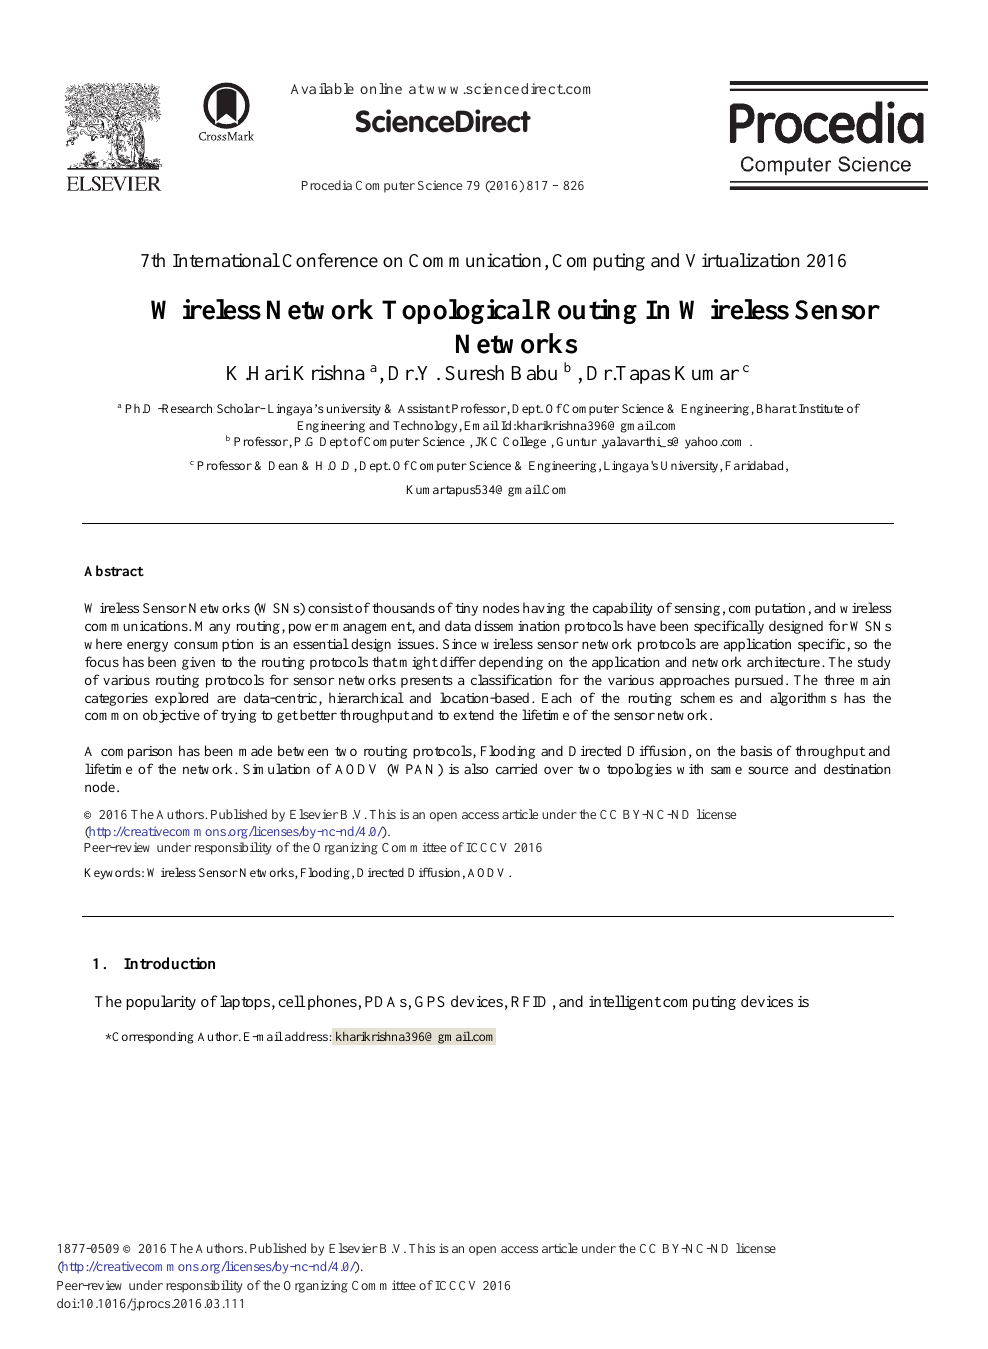 Wireless Network Topological Routing in Wireless Sensor Networks